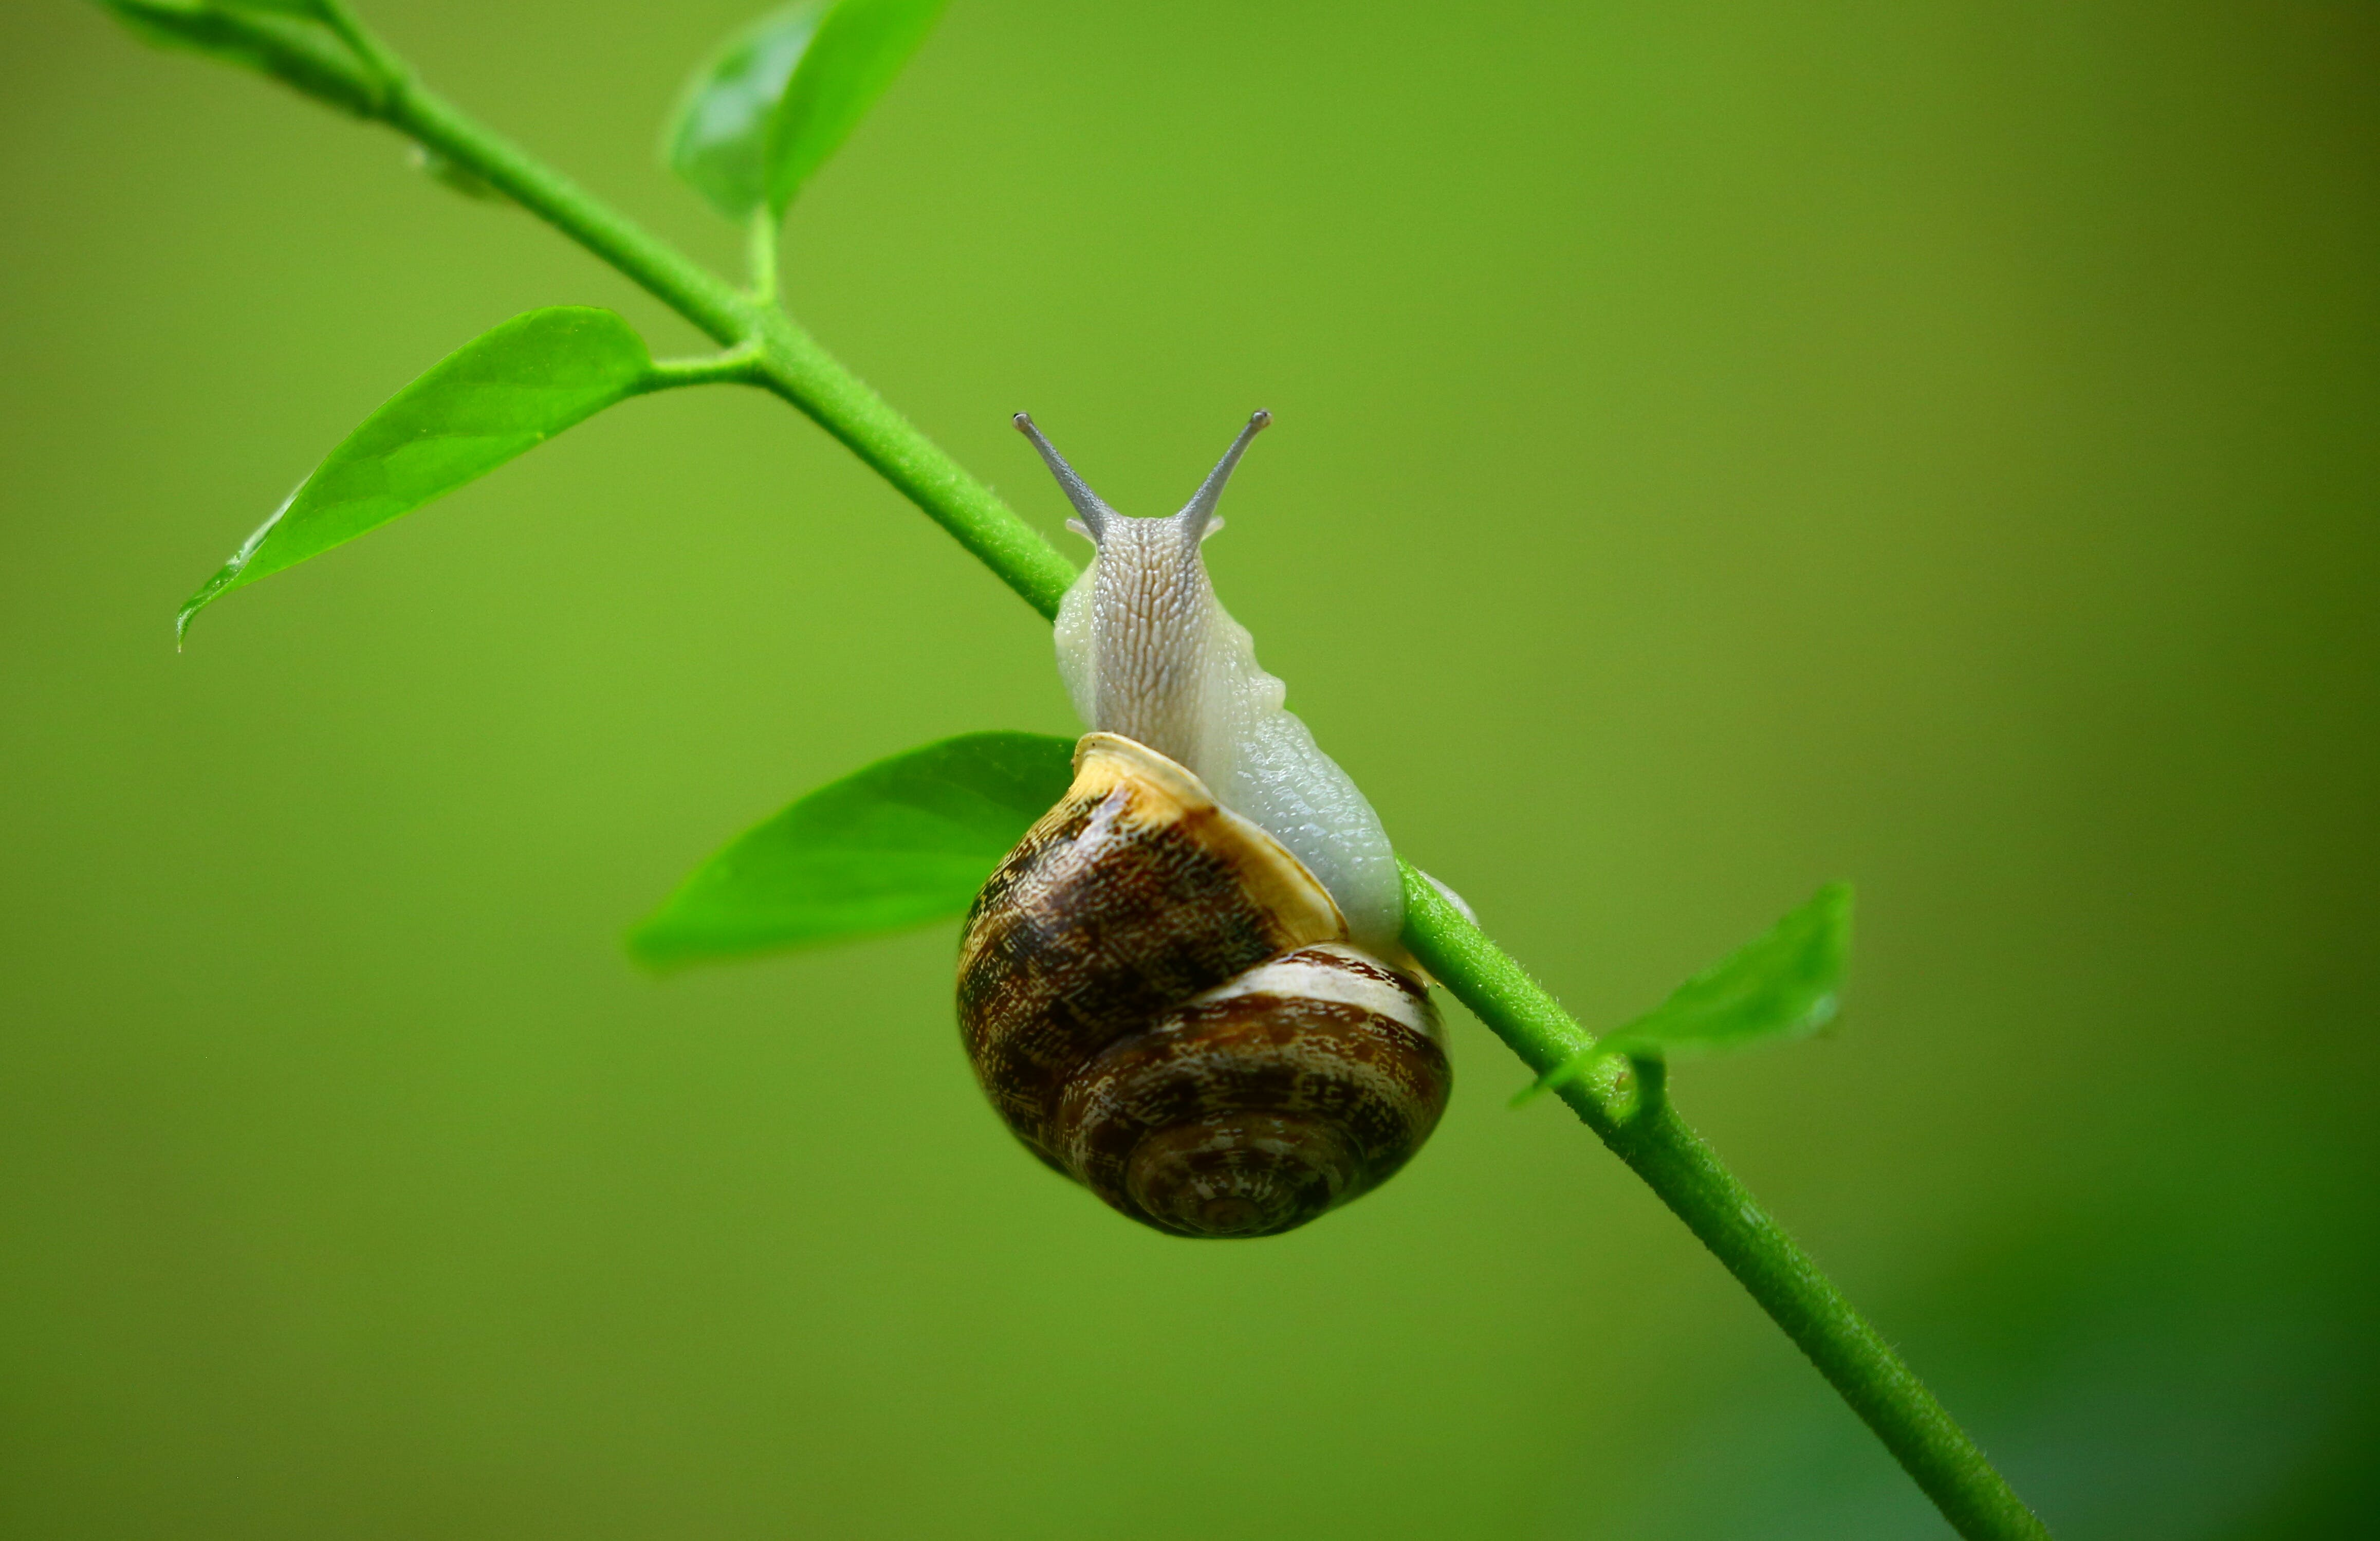 Brown and Gray Snail on Green Plant Branch